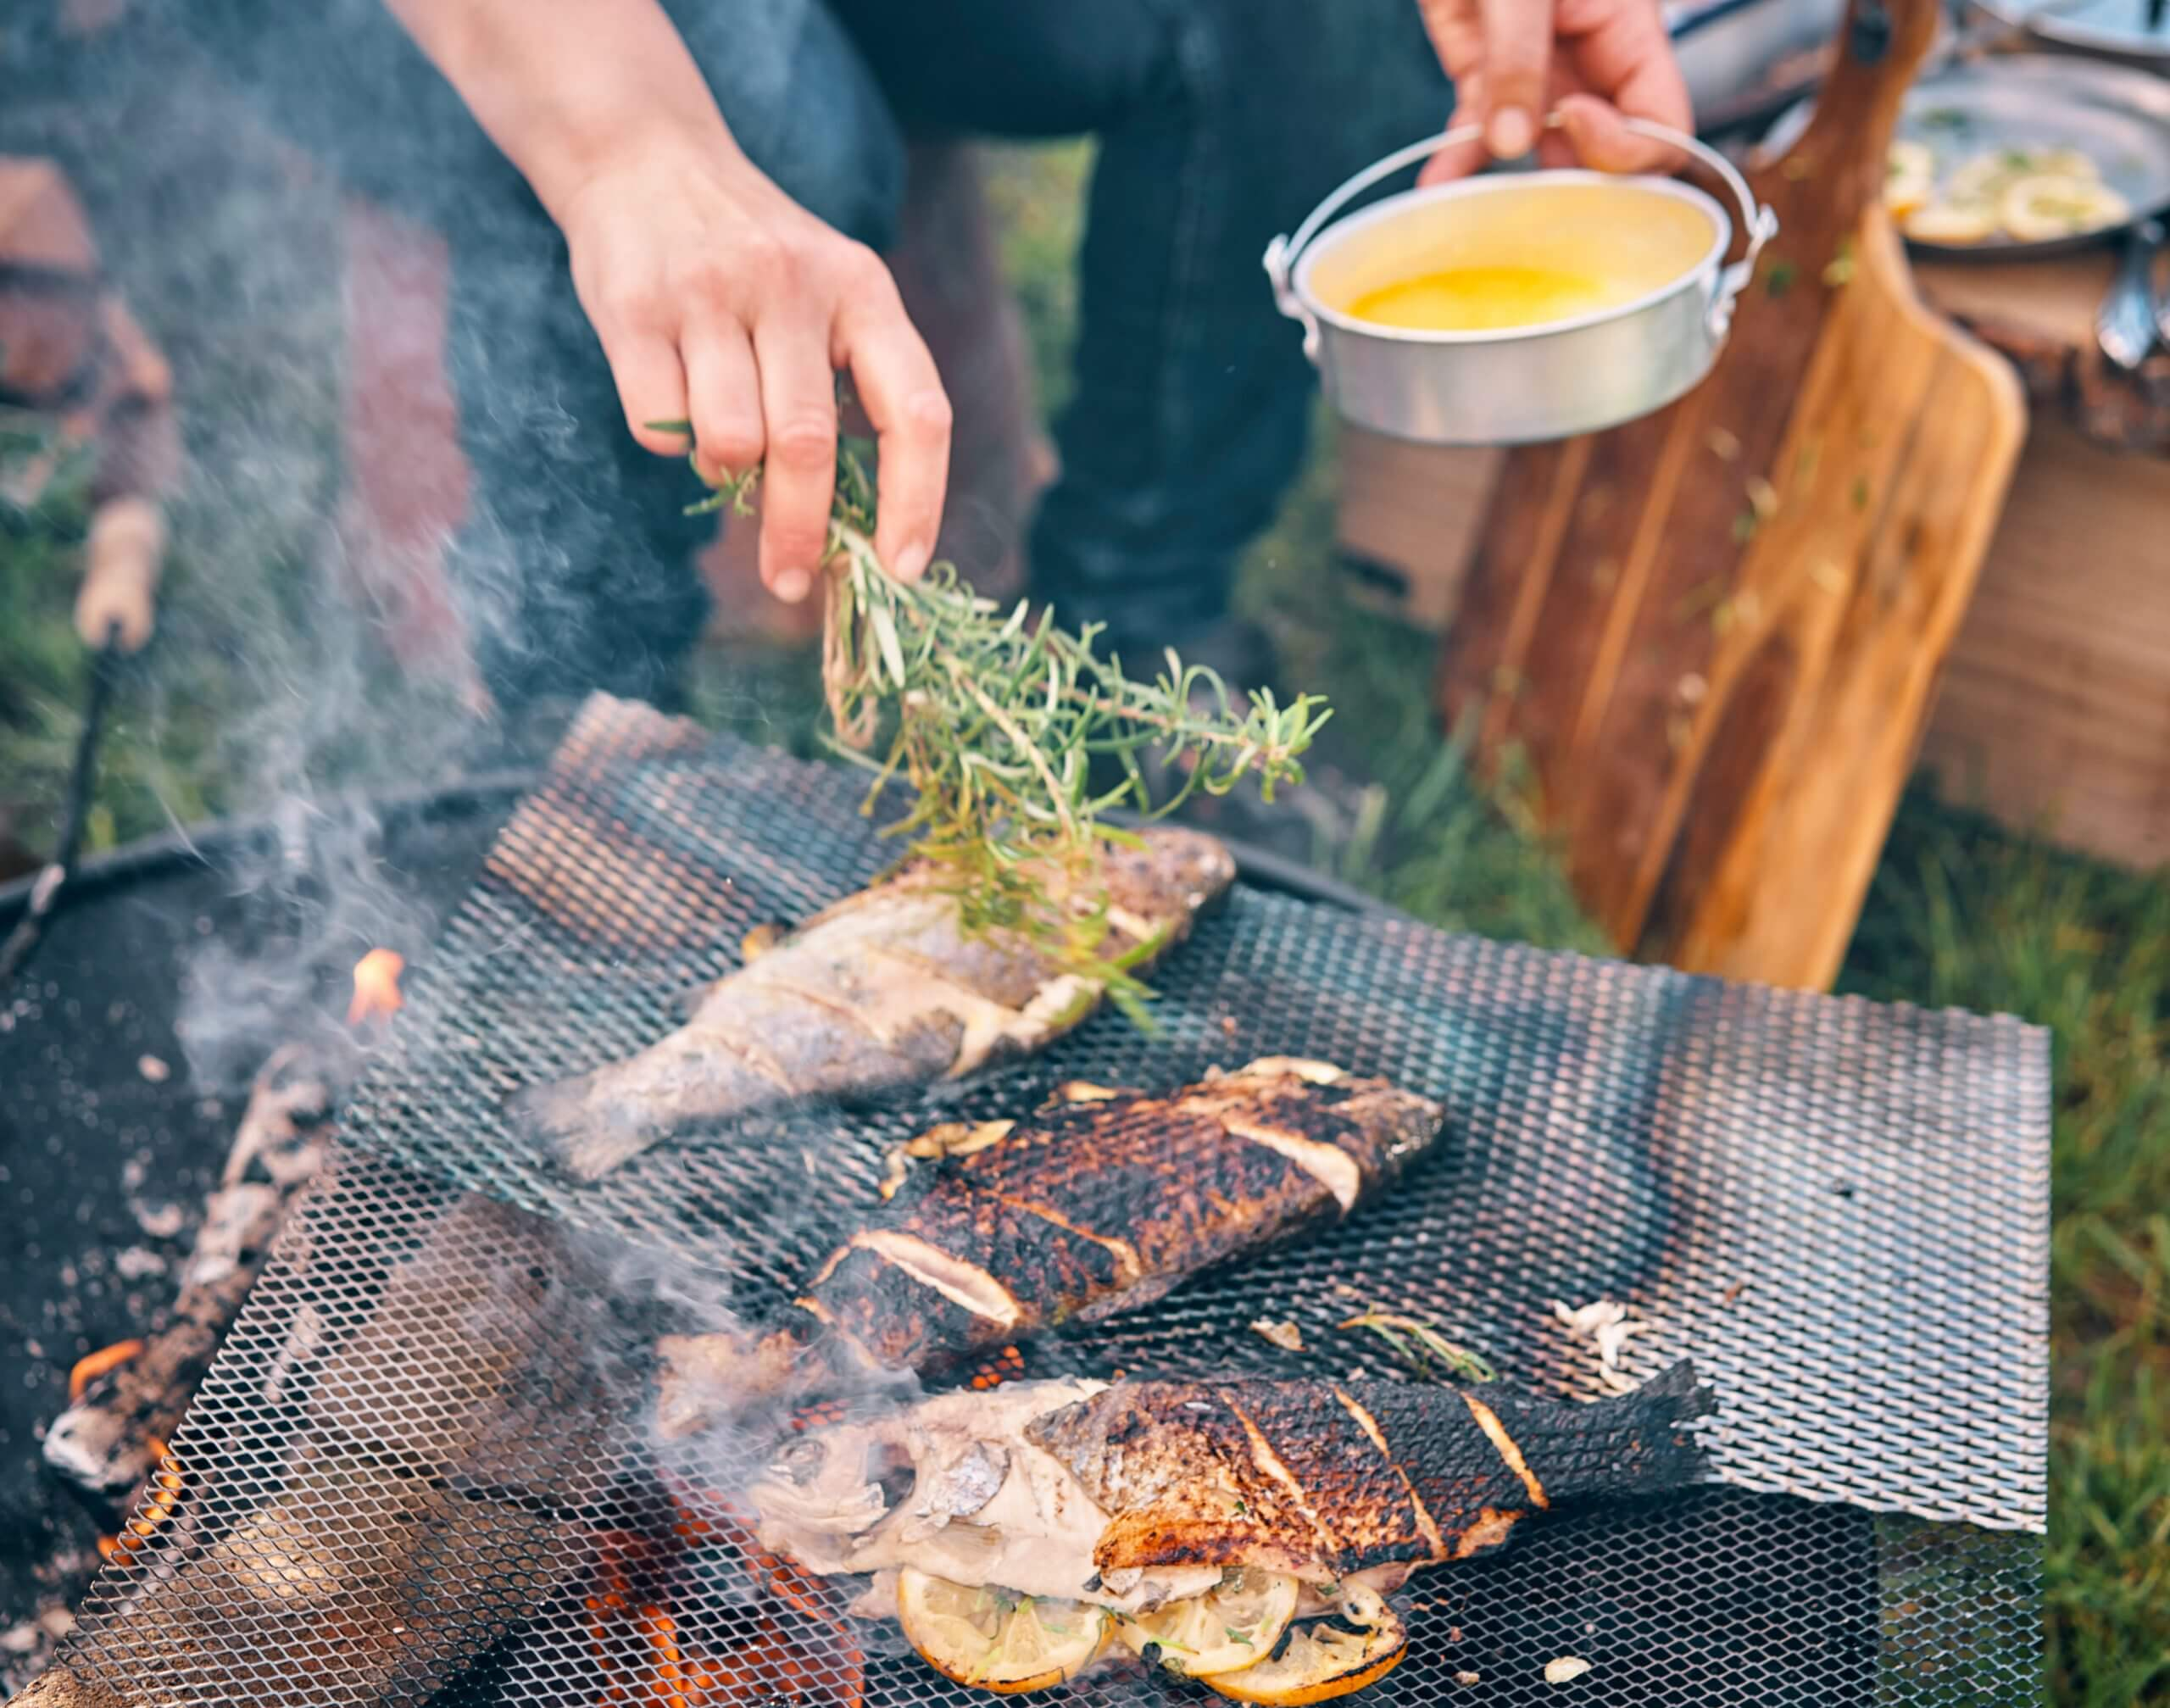 A person grilling three freshly caught fish stuffed with sliced lemons over an open fire pit.